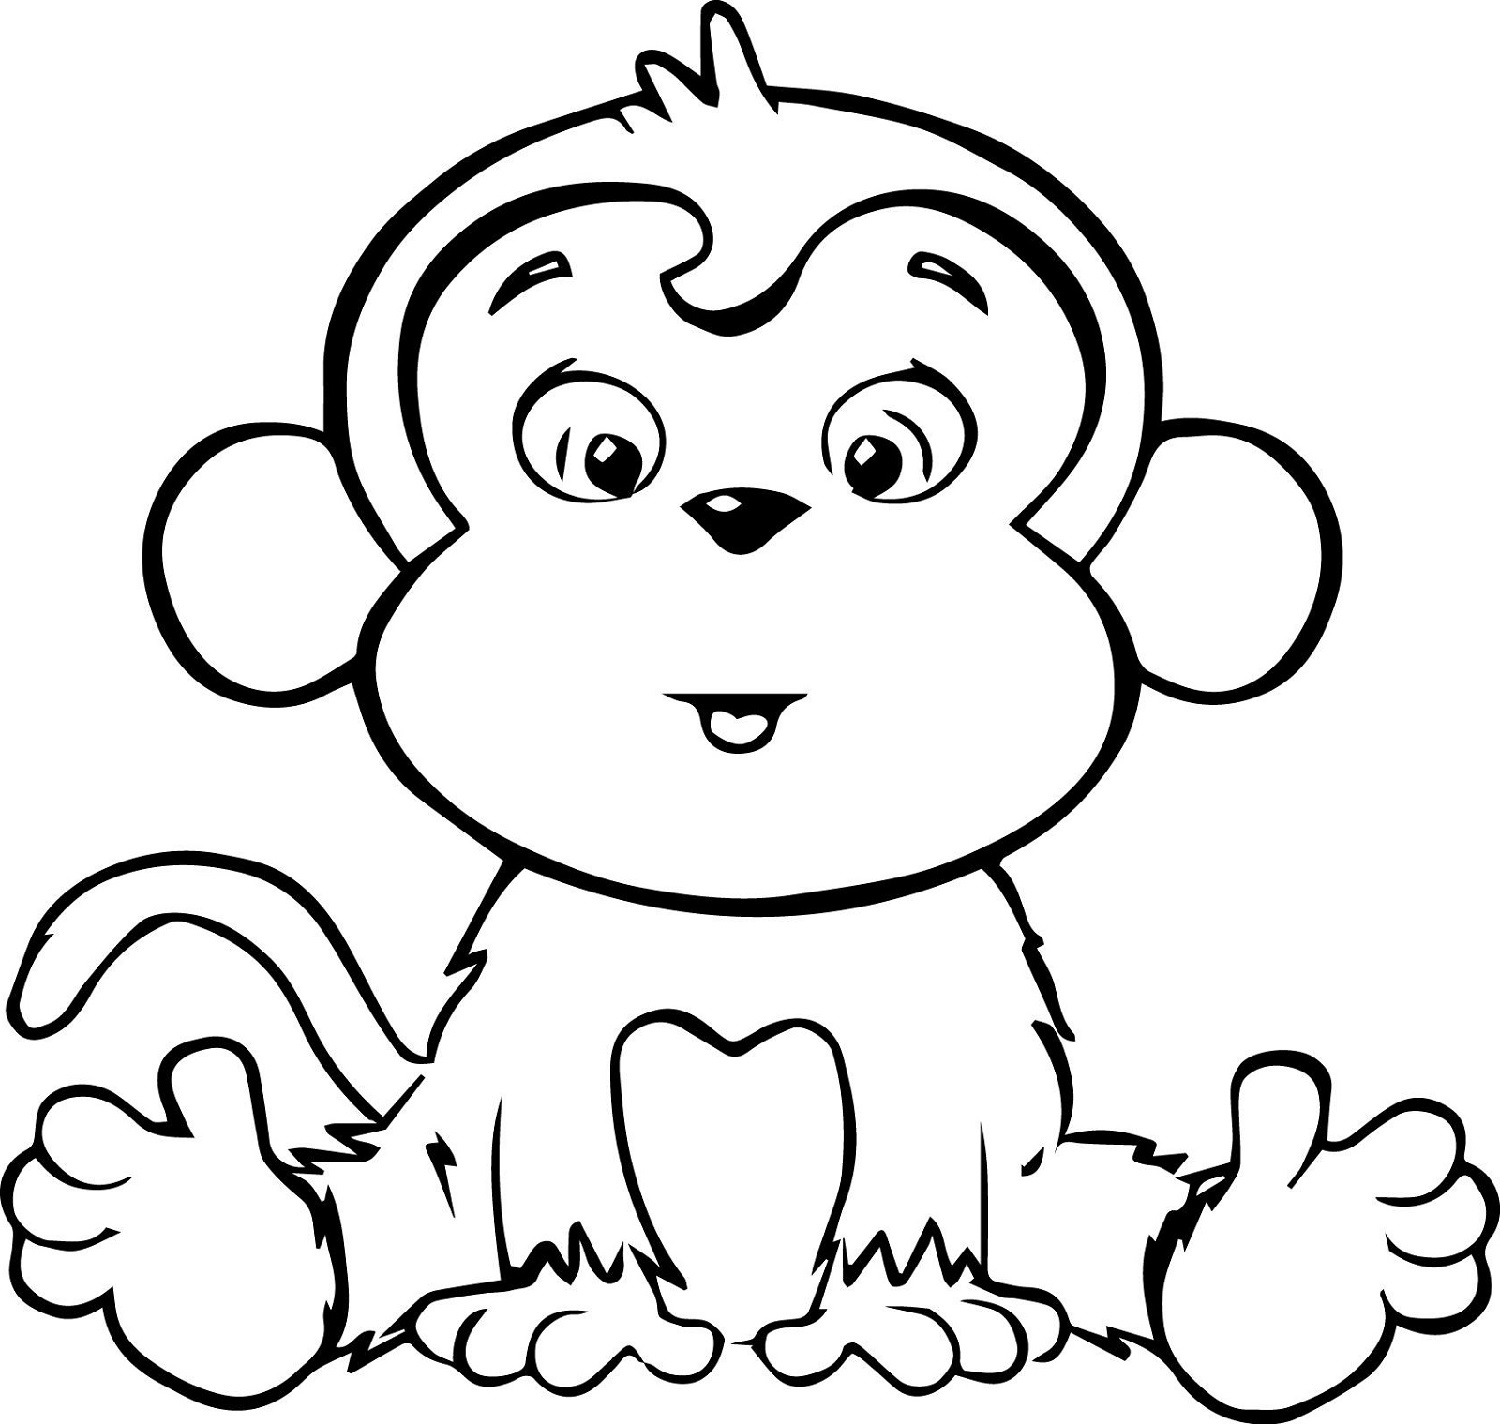 coloring pic of monkey free printable monkey coloring pages for kids jeffersonclan monkey of coloring pic